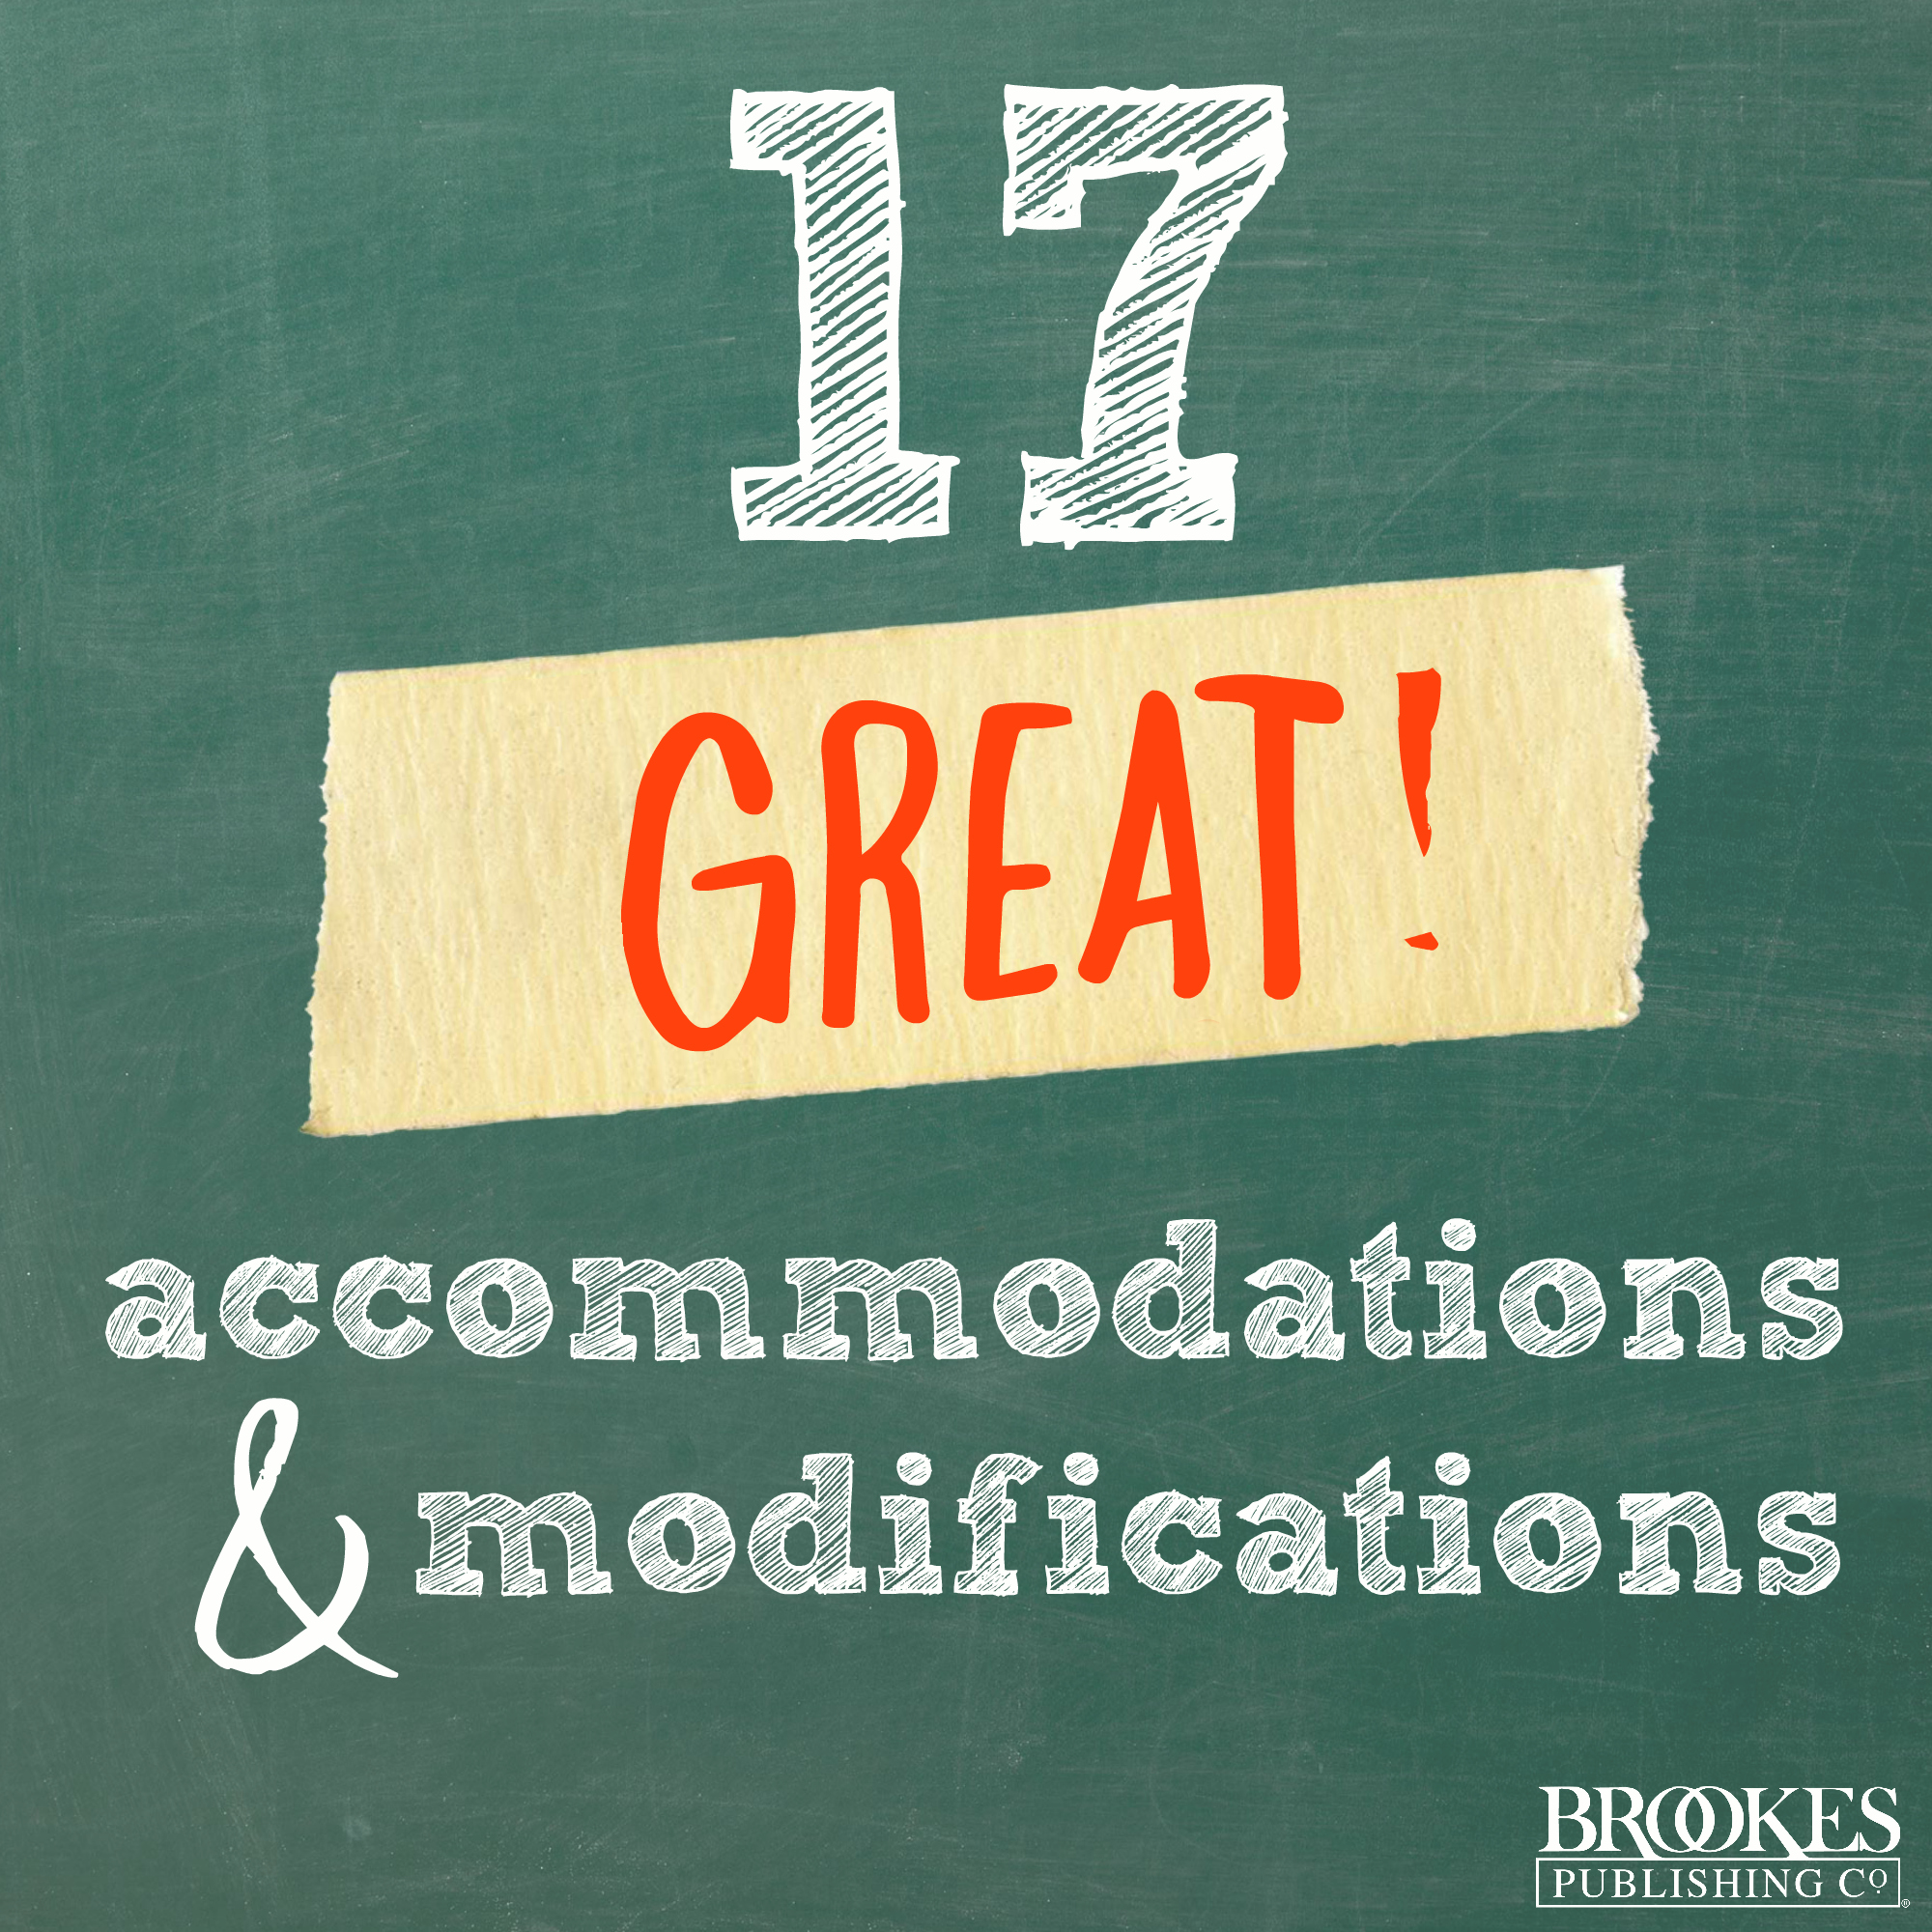 17 Great Accommodations & Modifications